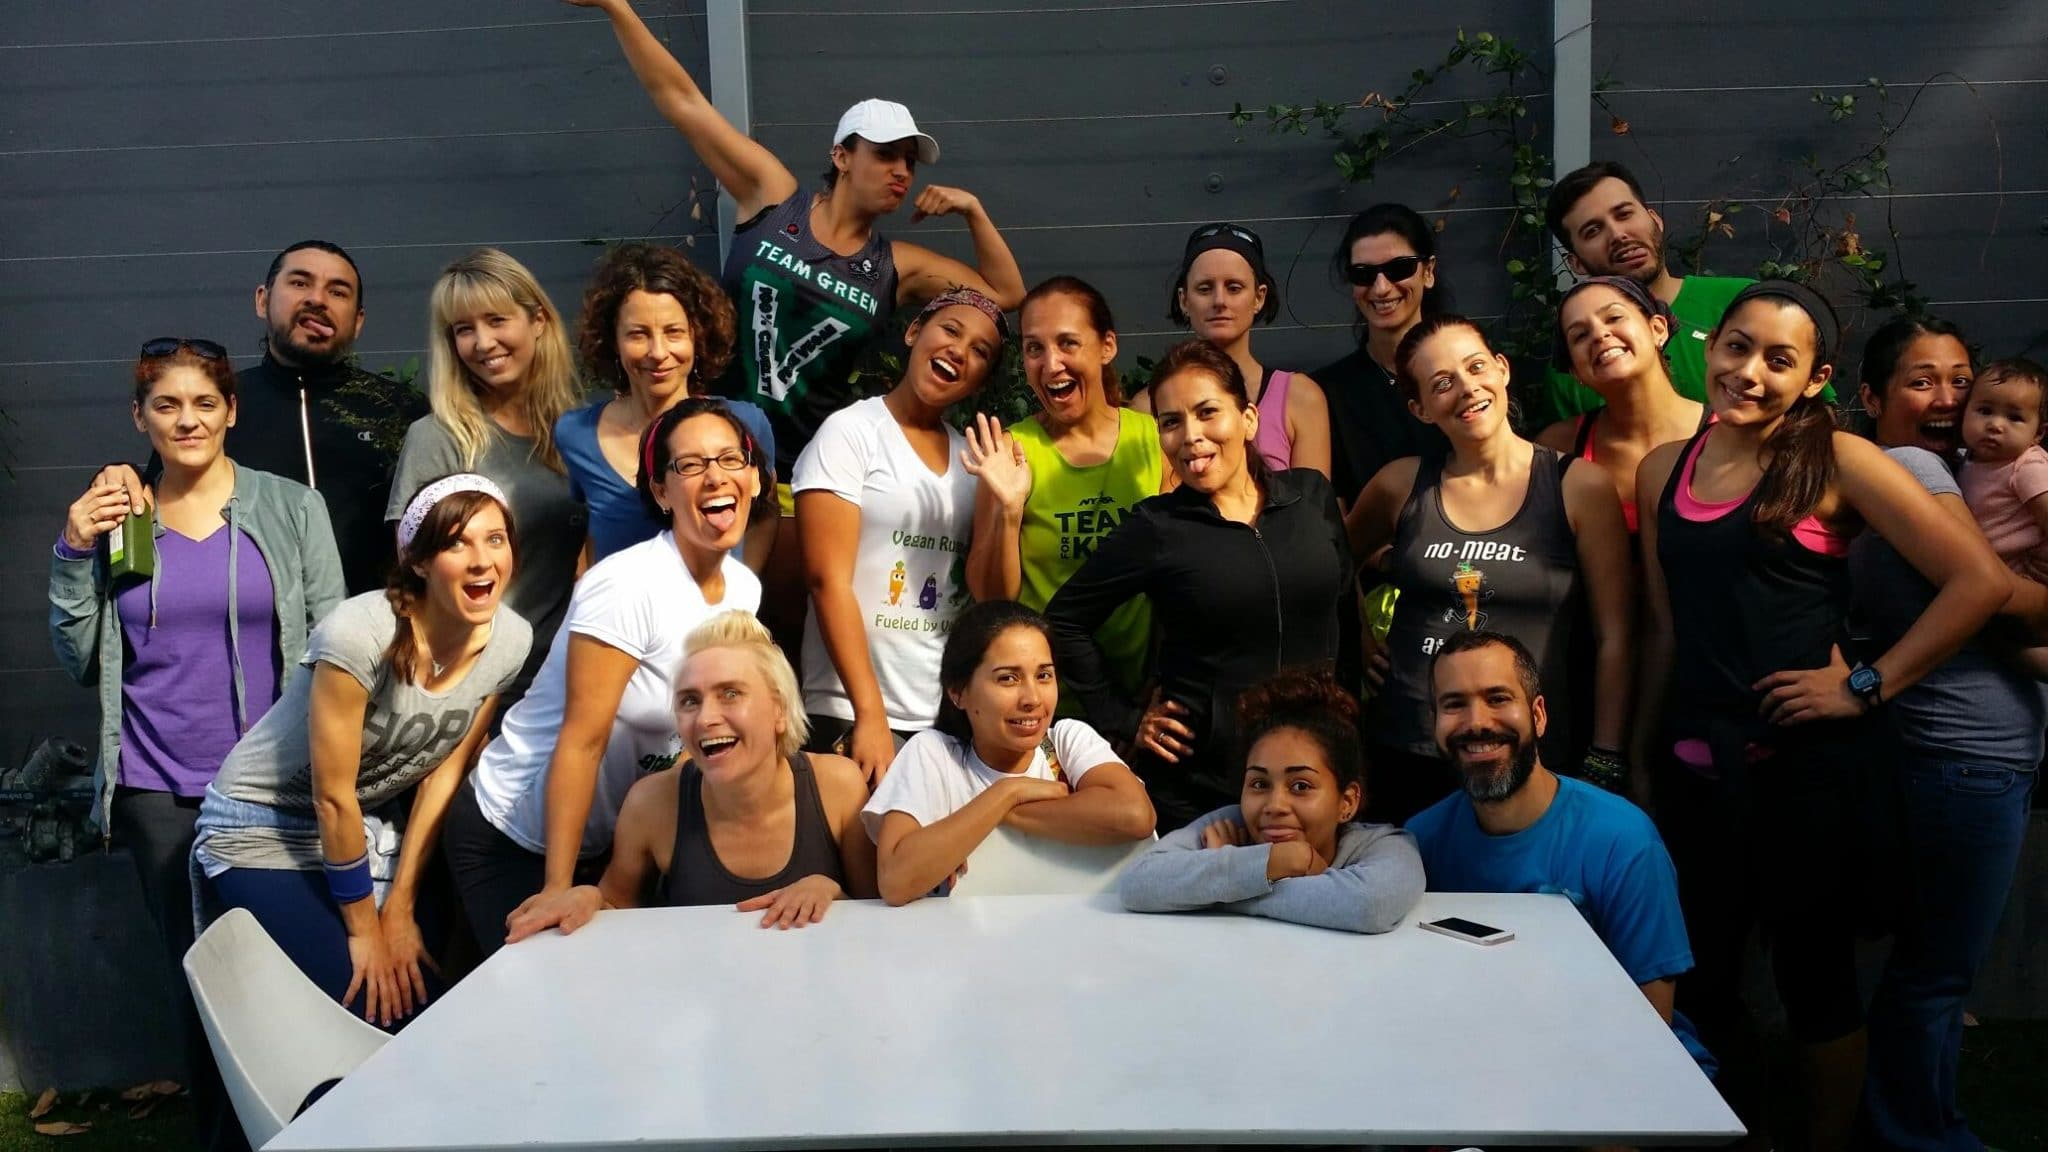 NMA Run Group Miami